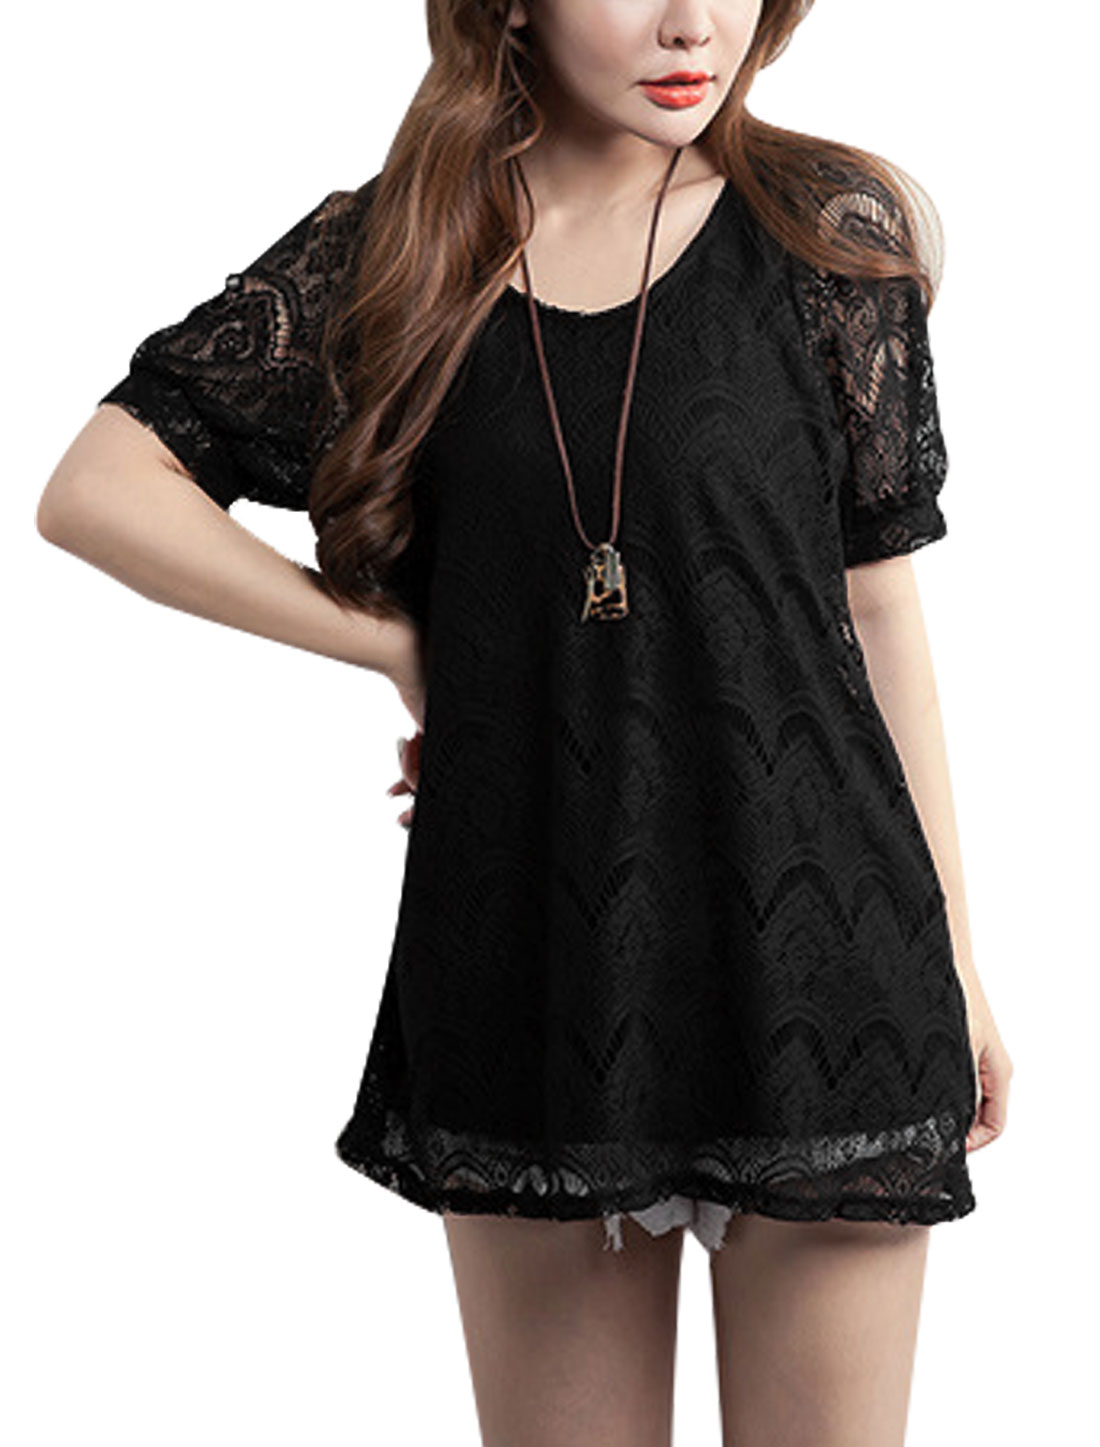 Ladies Scoop Neck Lined Sweet Lace Top Black XS